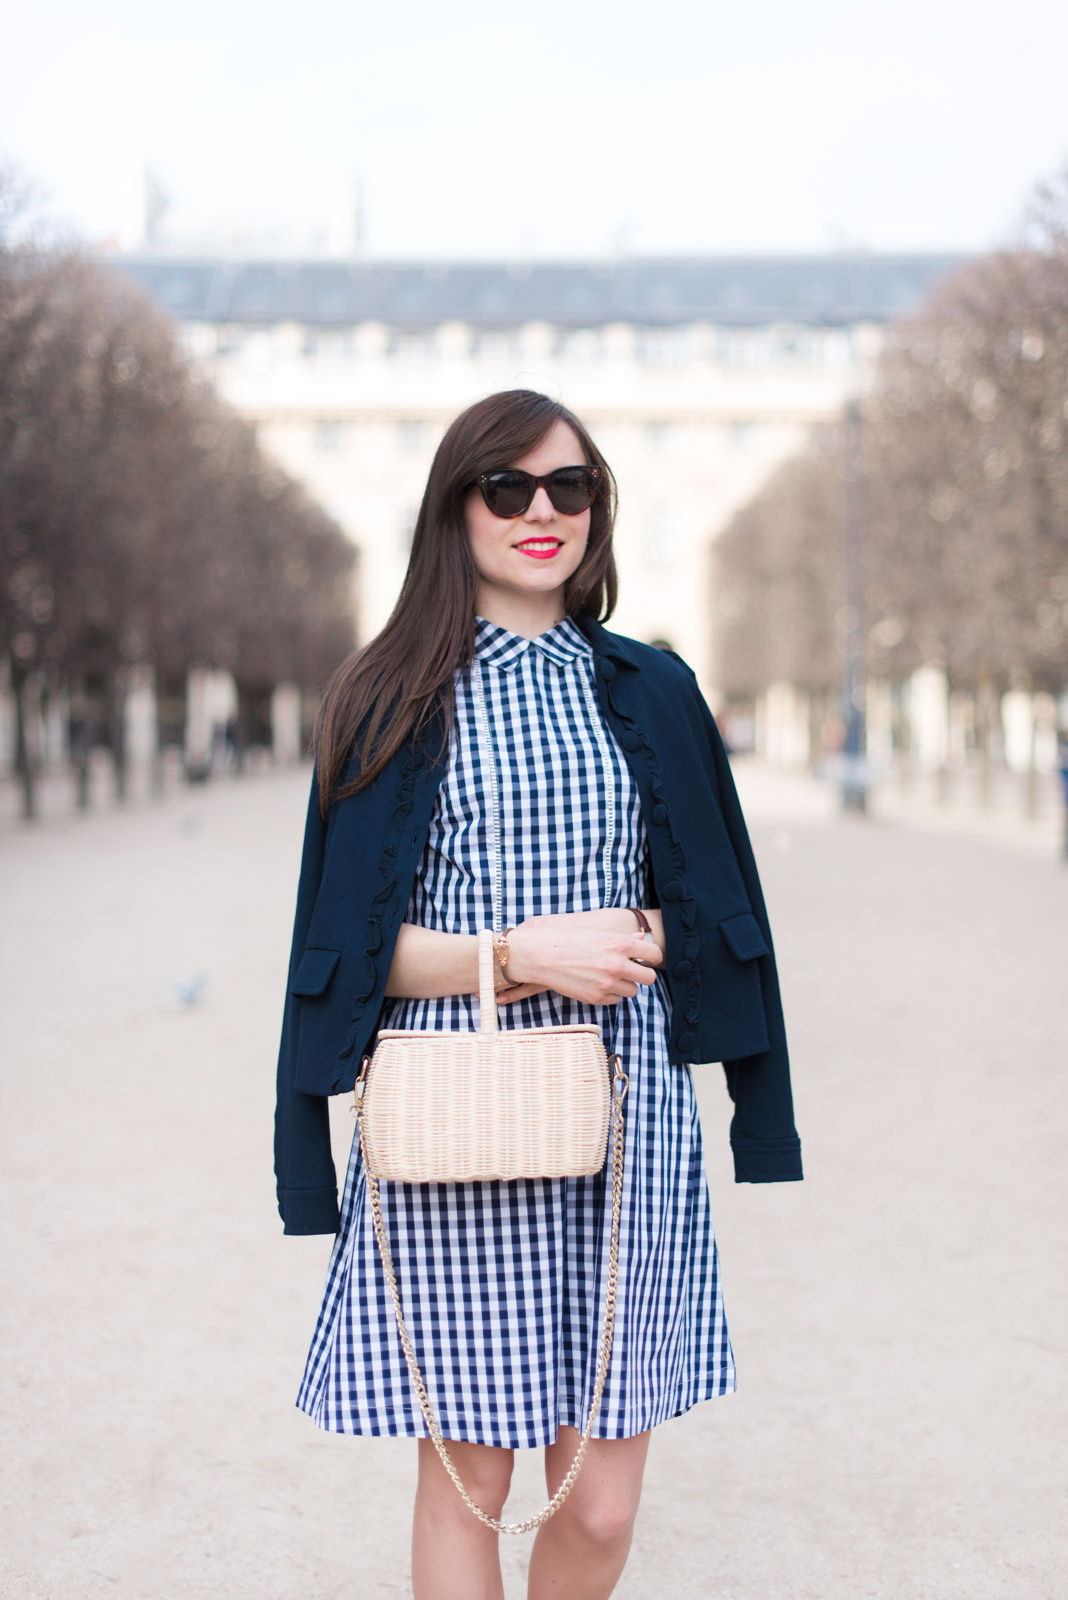 Blog-Mode-And-The-City-Looks-En-Robe-Vichy-5